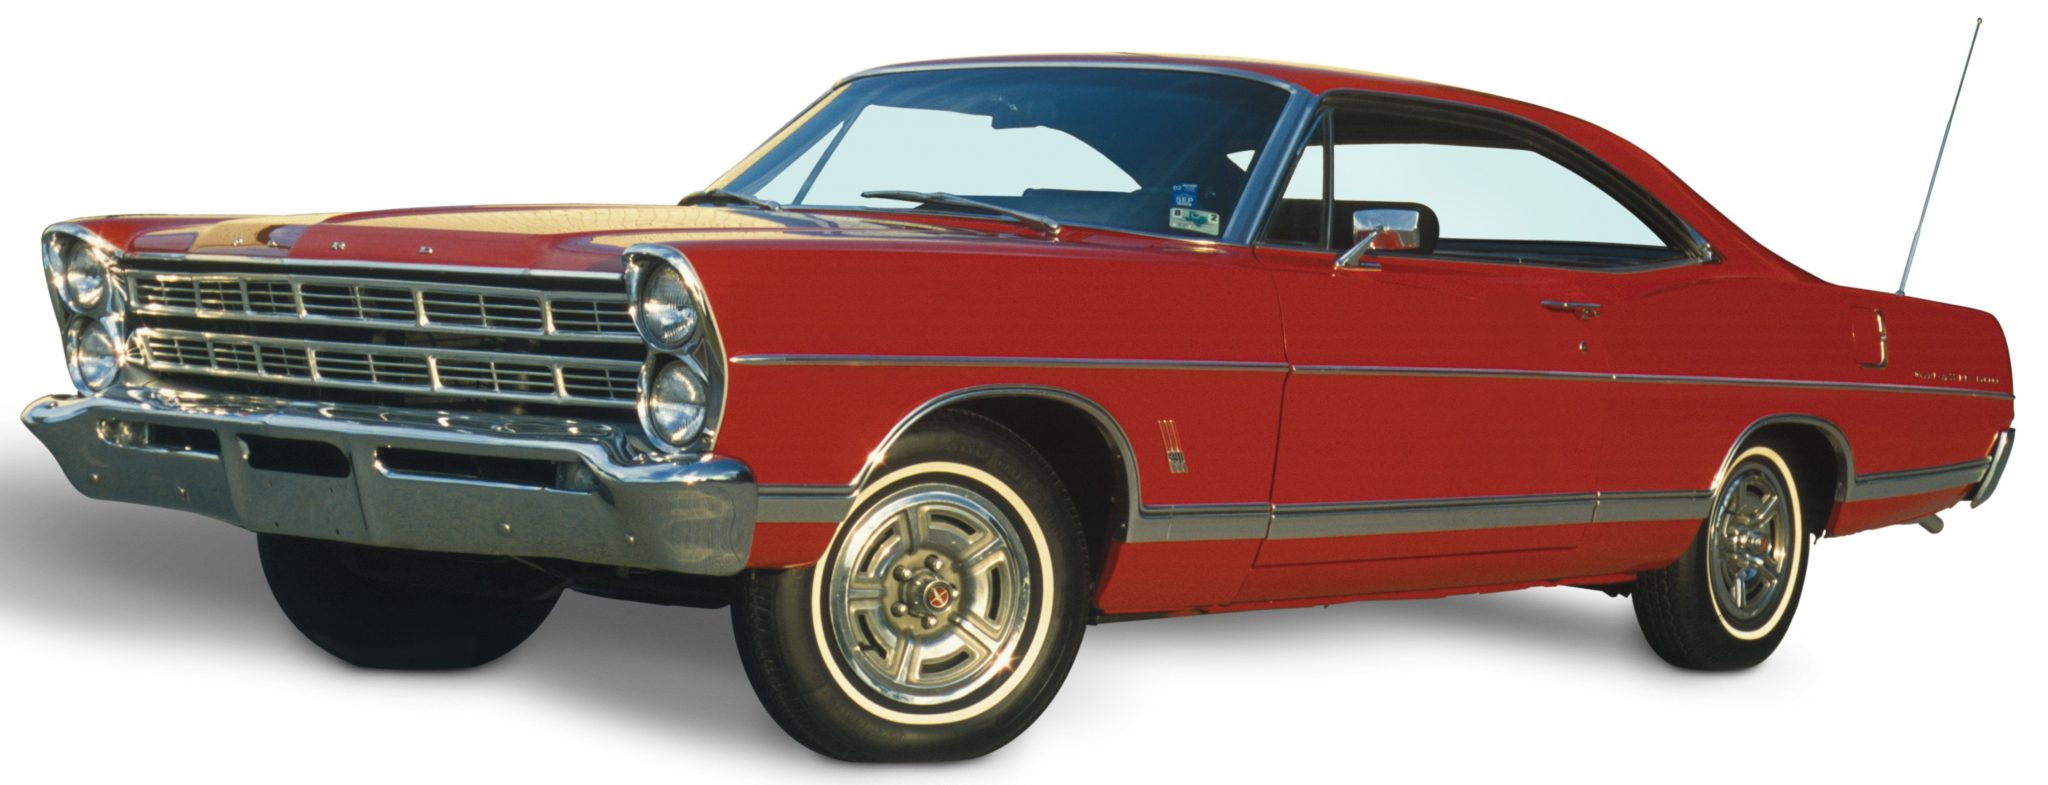 1967 Ford Galaxie 500 Two-Door Hardtop